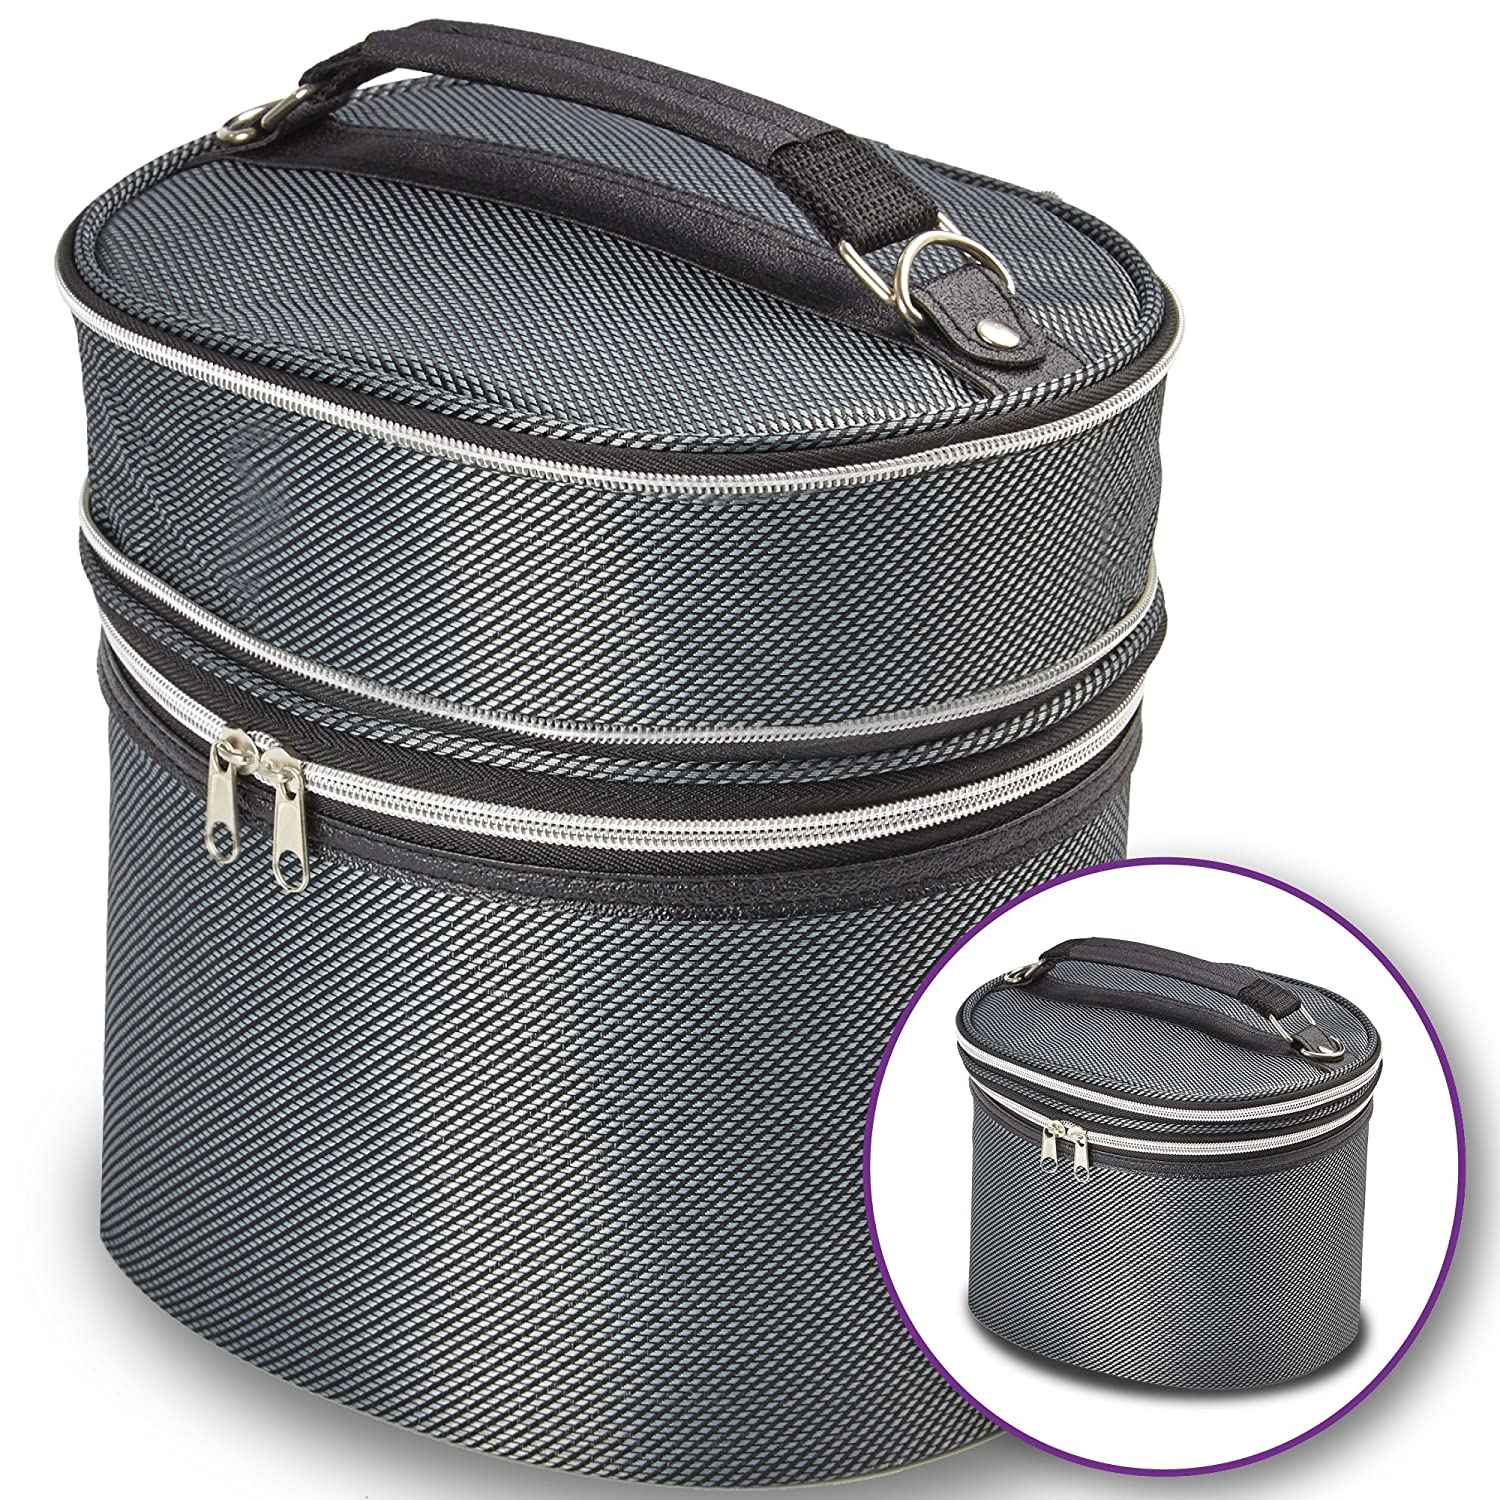 Silver Wig Travel Carrying Case - Lightweight and Portable Travelling Box - Zipper Top, Double Stitching - by Adolfo Design